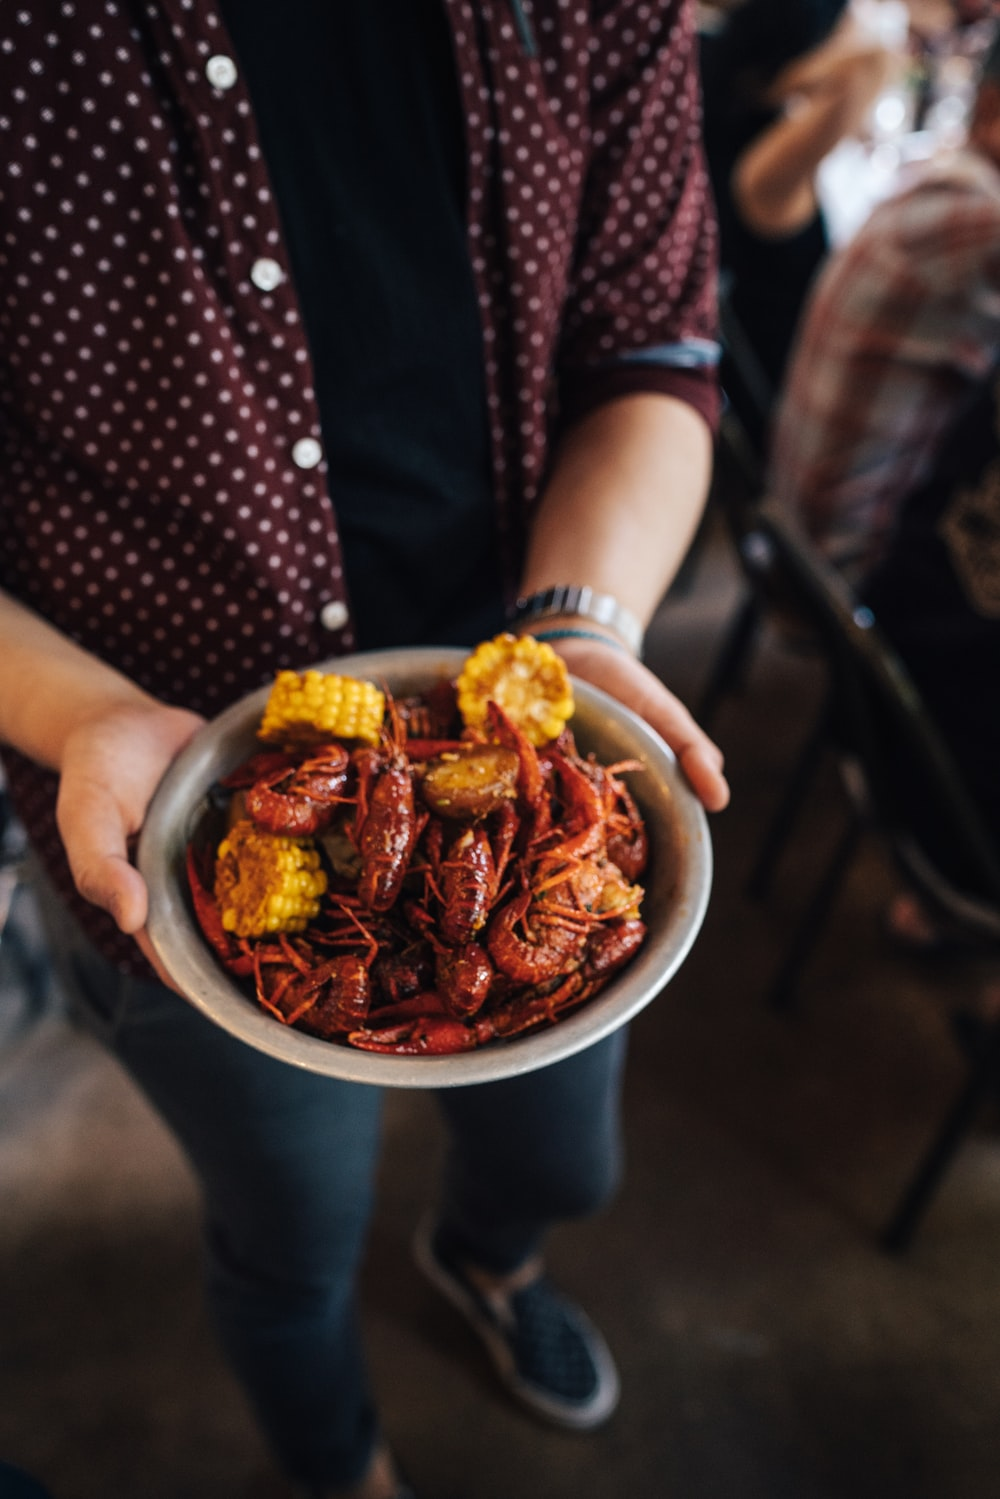 person holding bowl of shrimp with slice of corn dish